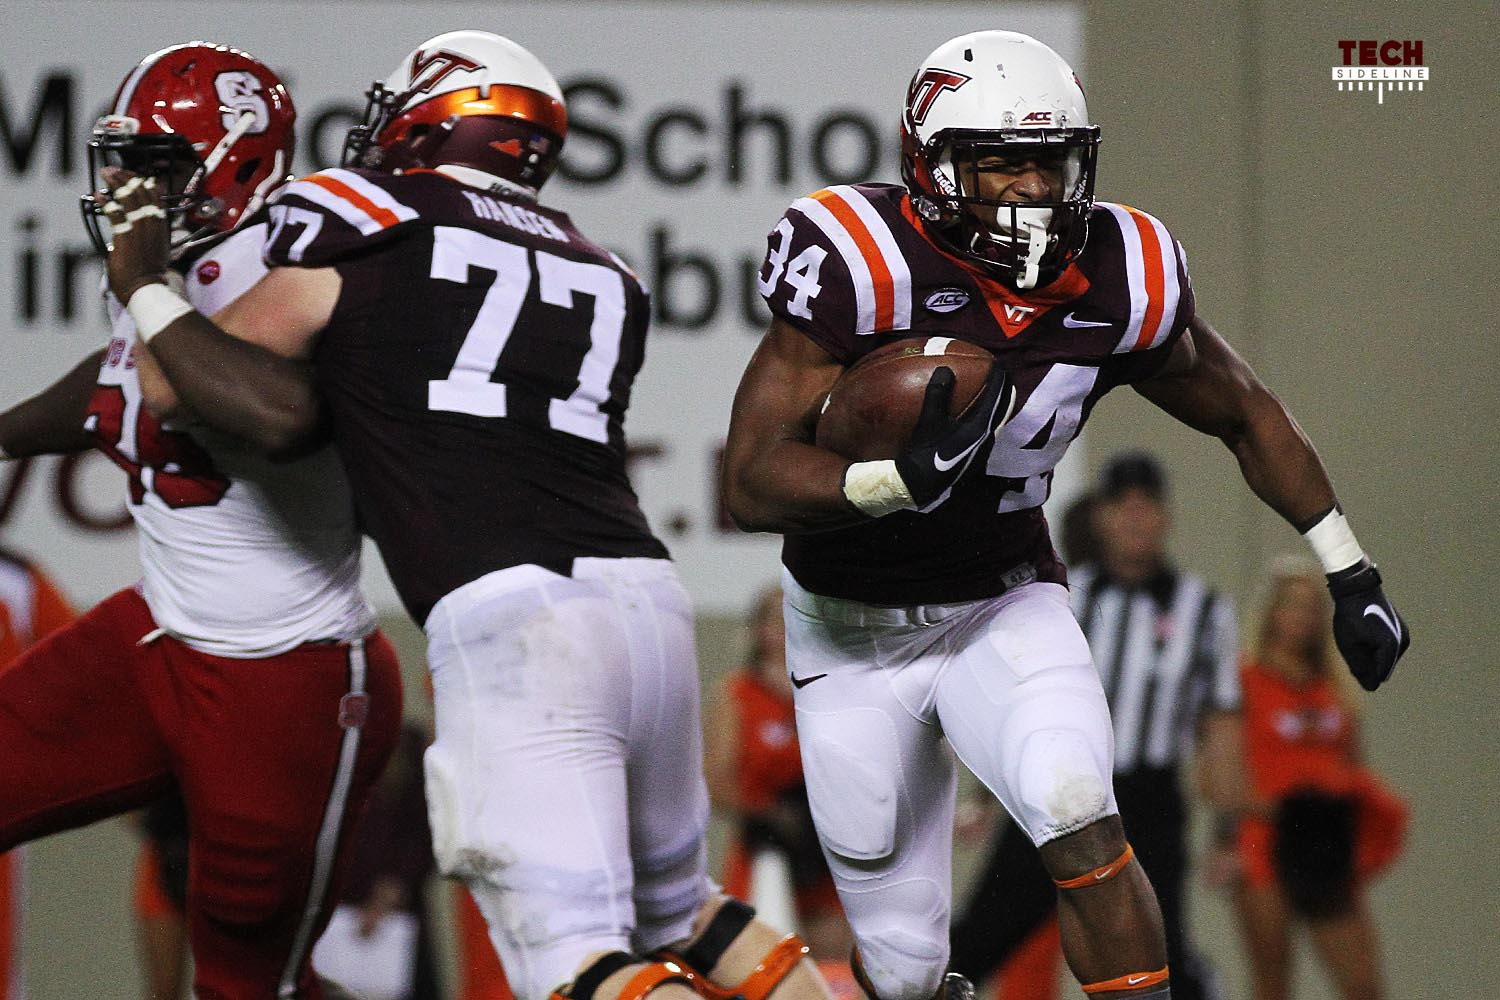 Travon McMillian had 96 yards on just 11 carries